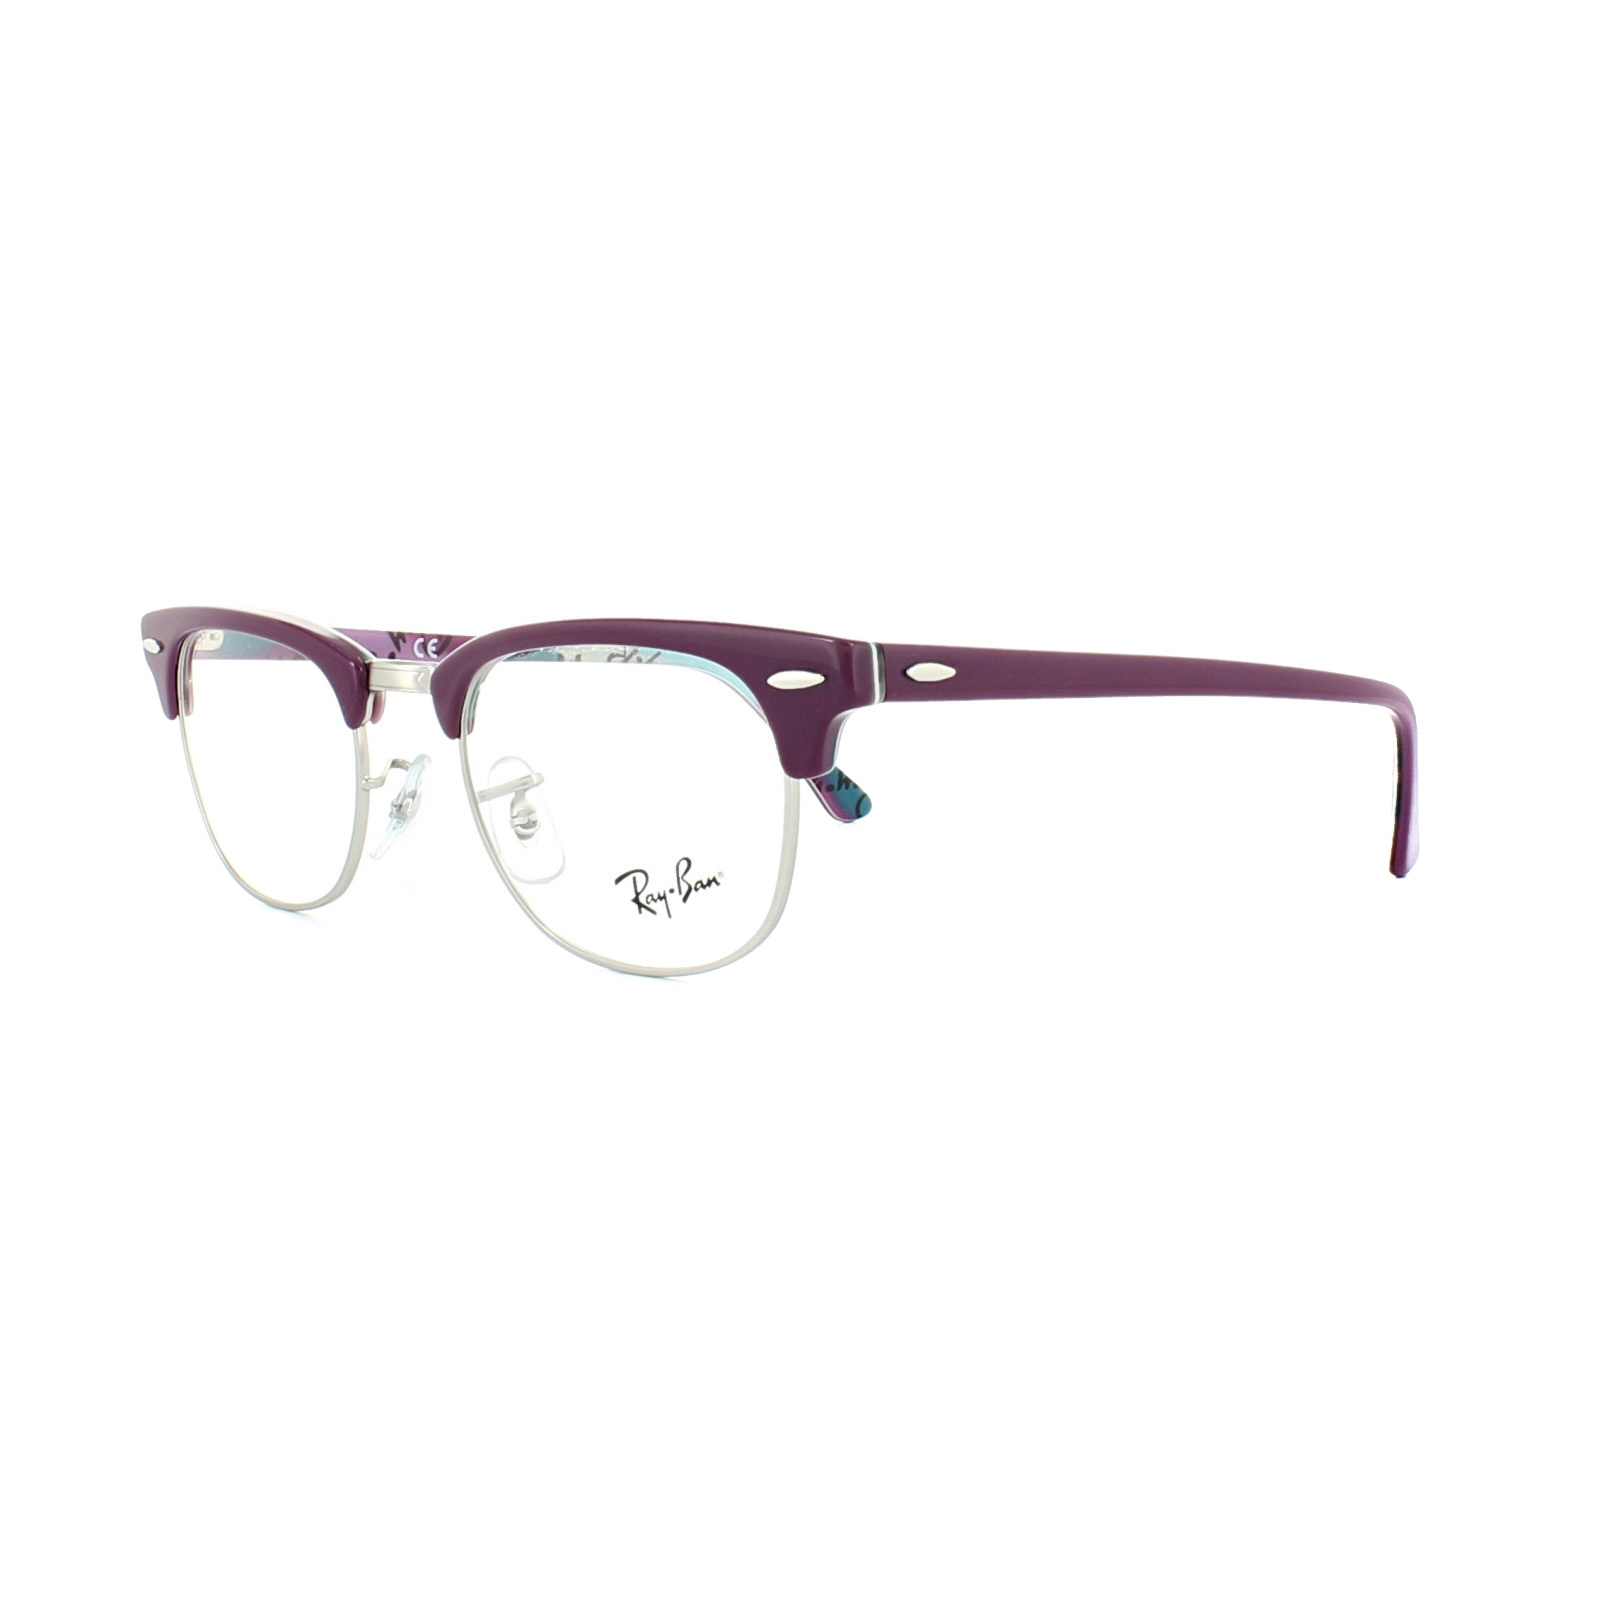 Ray-Ban Glasses Frames 5154 Clubmaster 5652 Violet Texture ...